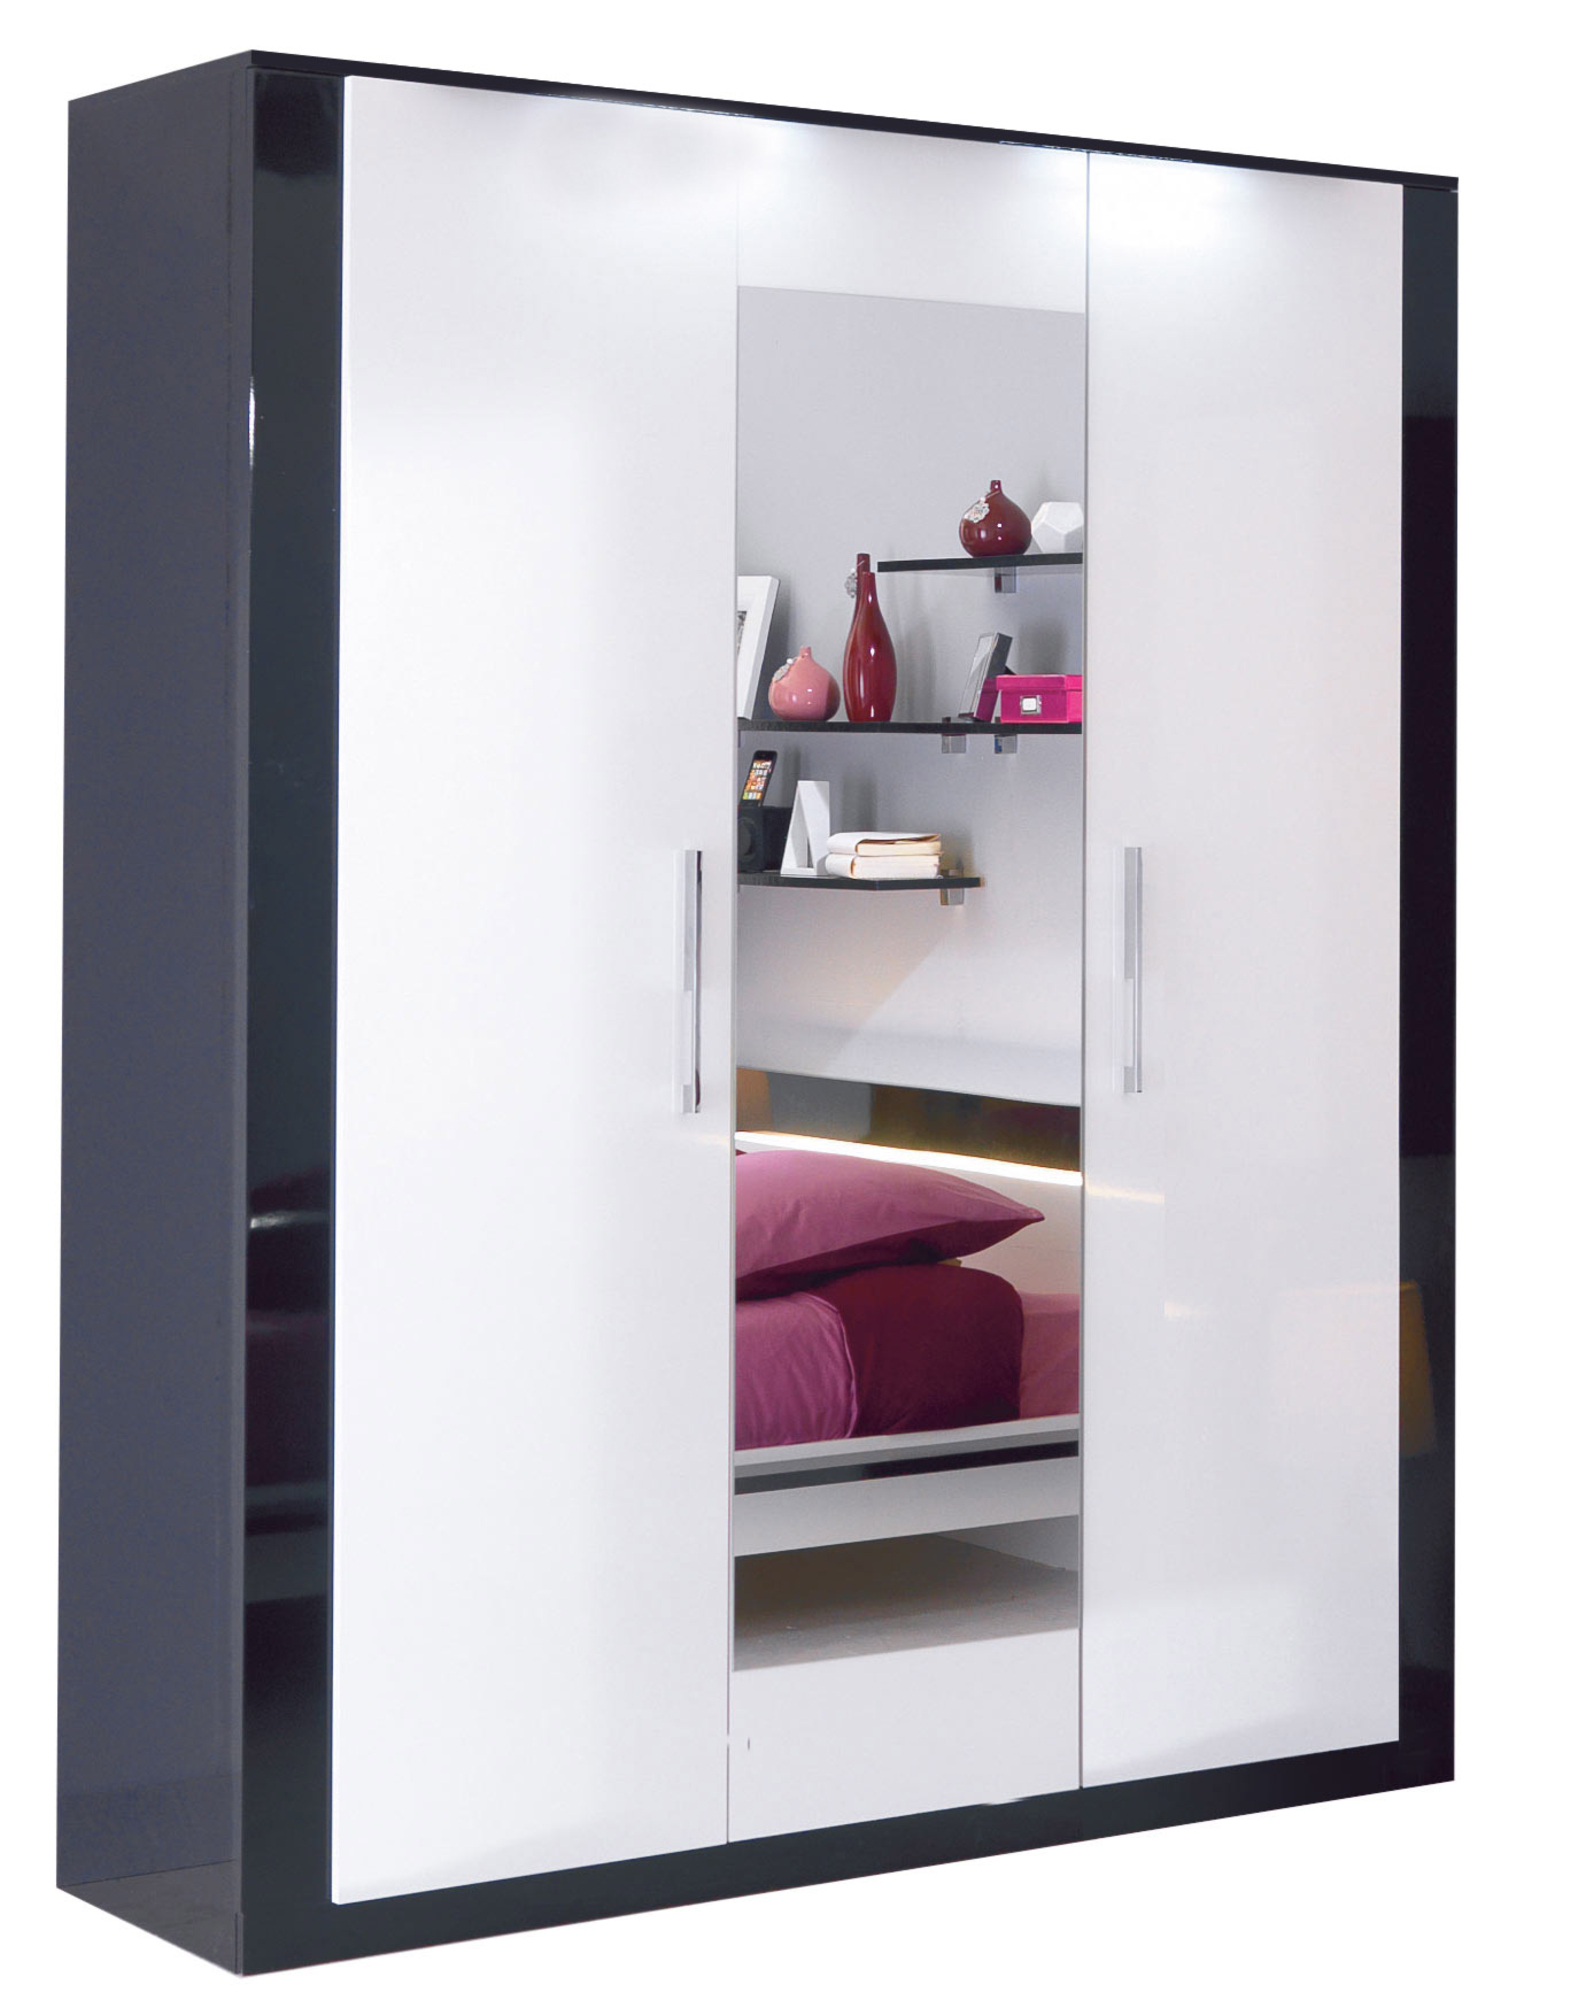 armoire 4 portes avec miroir scoop blanc et noir. Black Bedroom Furniture Sets. Home Design Ideas